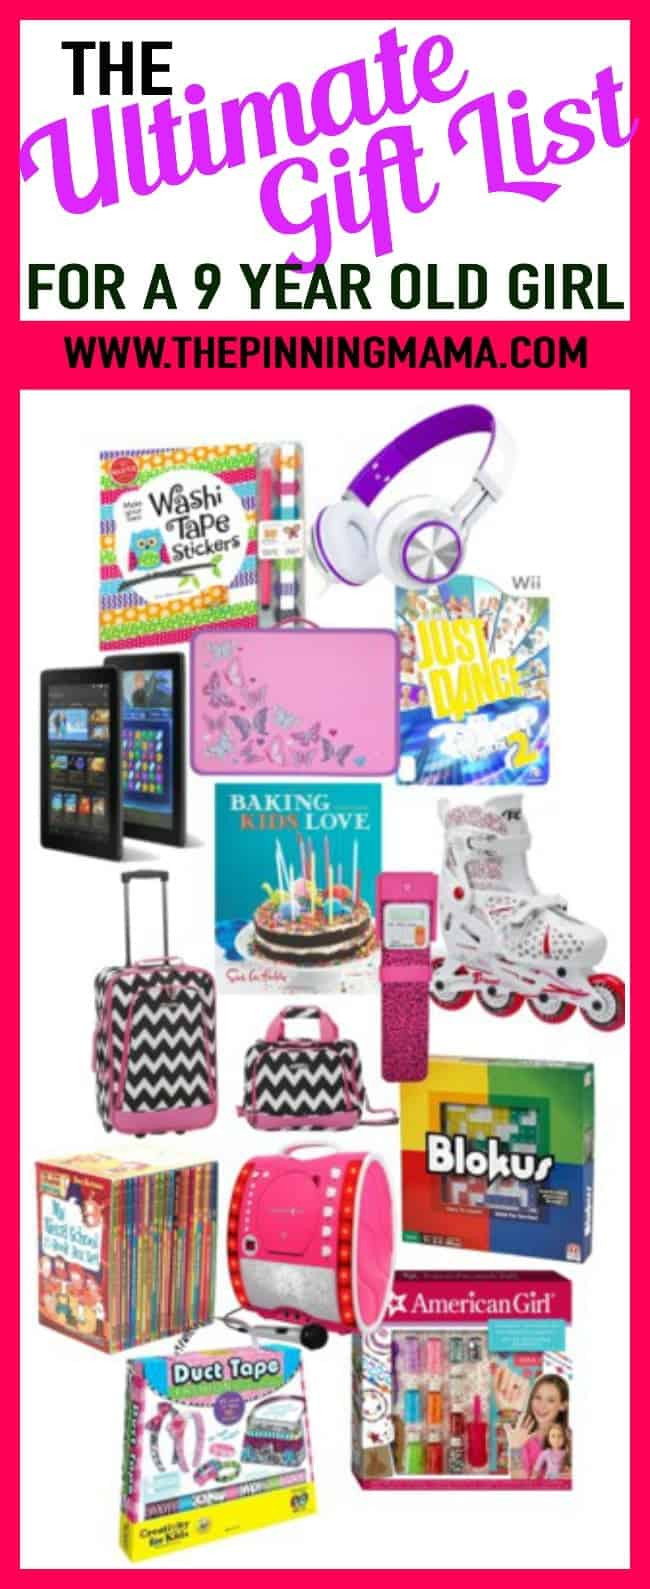 Best ideas about Girl Gift Ideas Age 9 . Save or Pin The Ultimate Gift List for a 9 Year Old Girl • The Pinning Now.